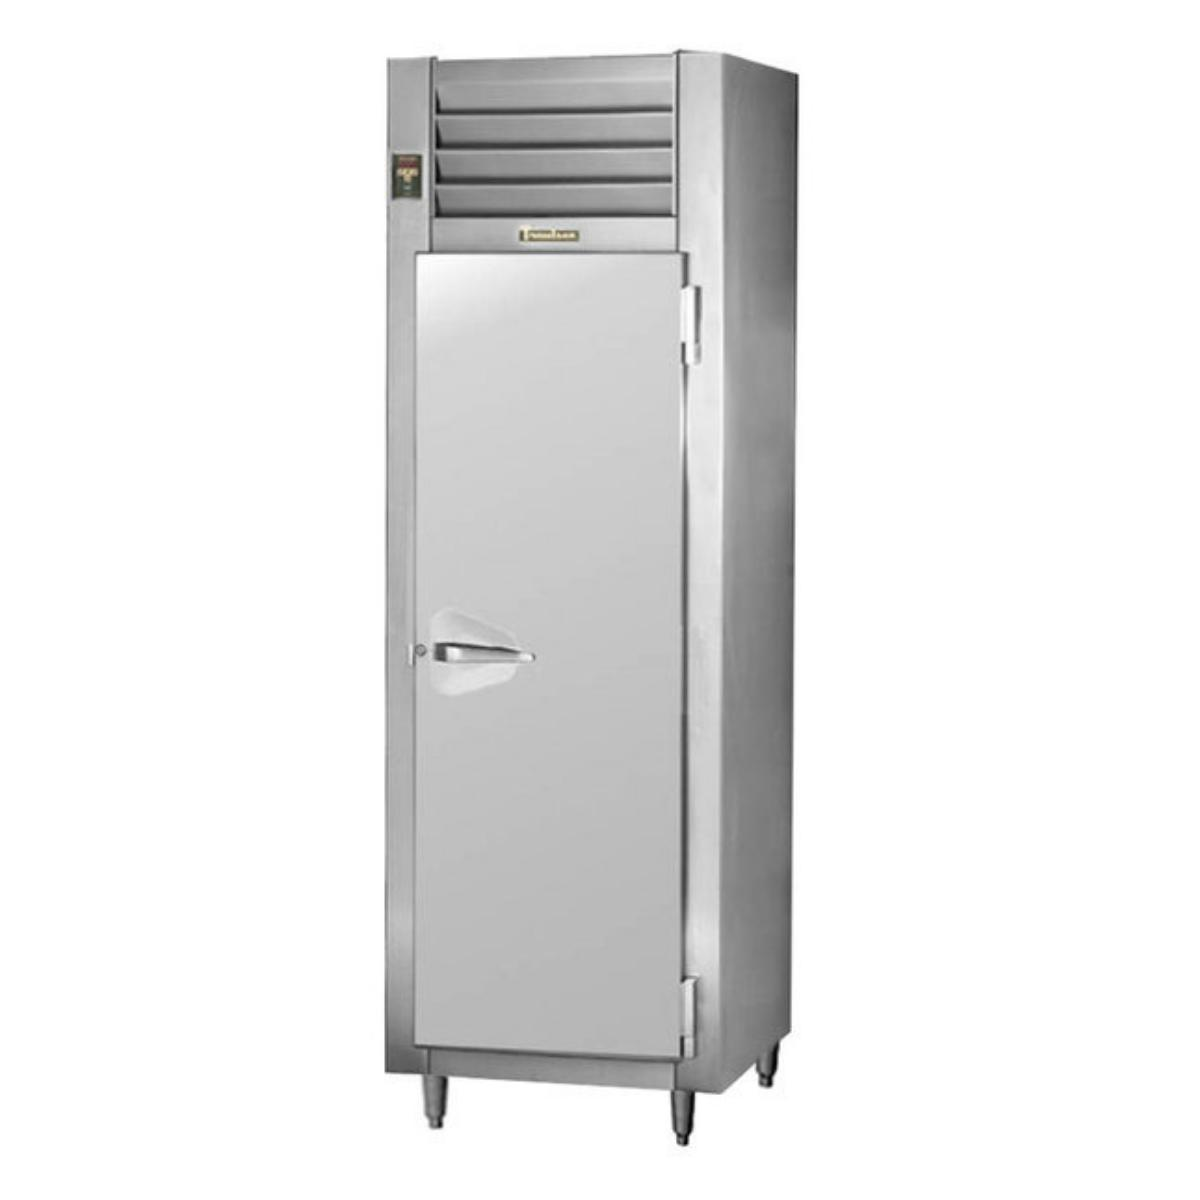 Traulsen RLT132DUT-FHS Reach-In Freezer